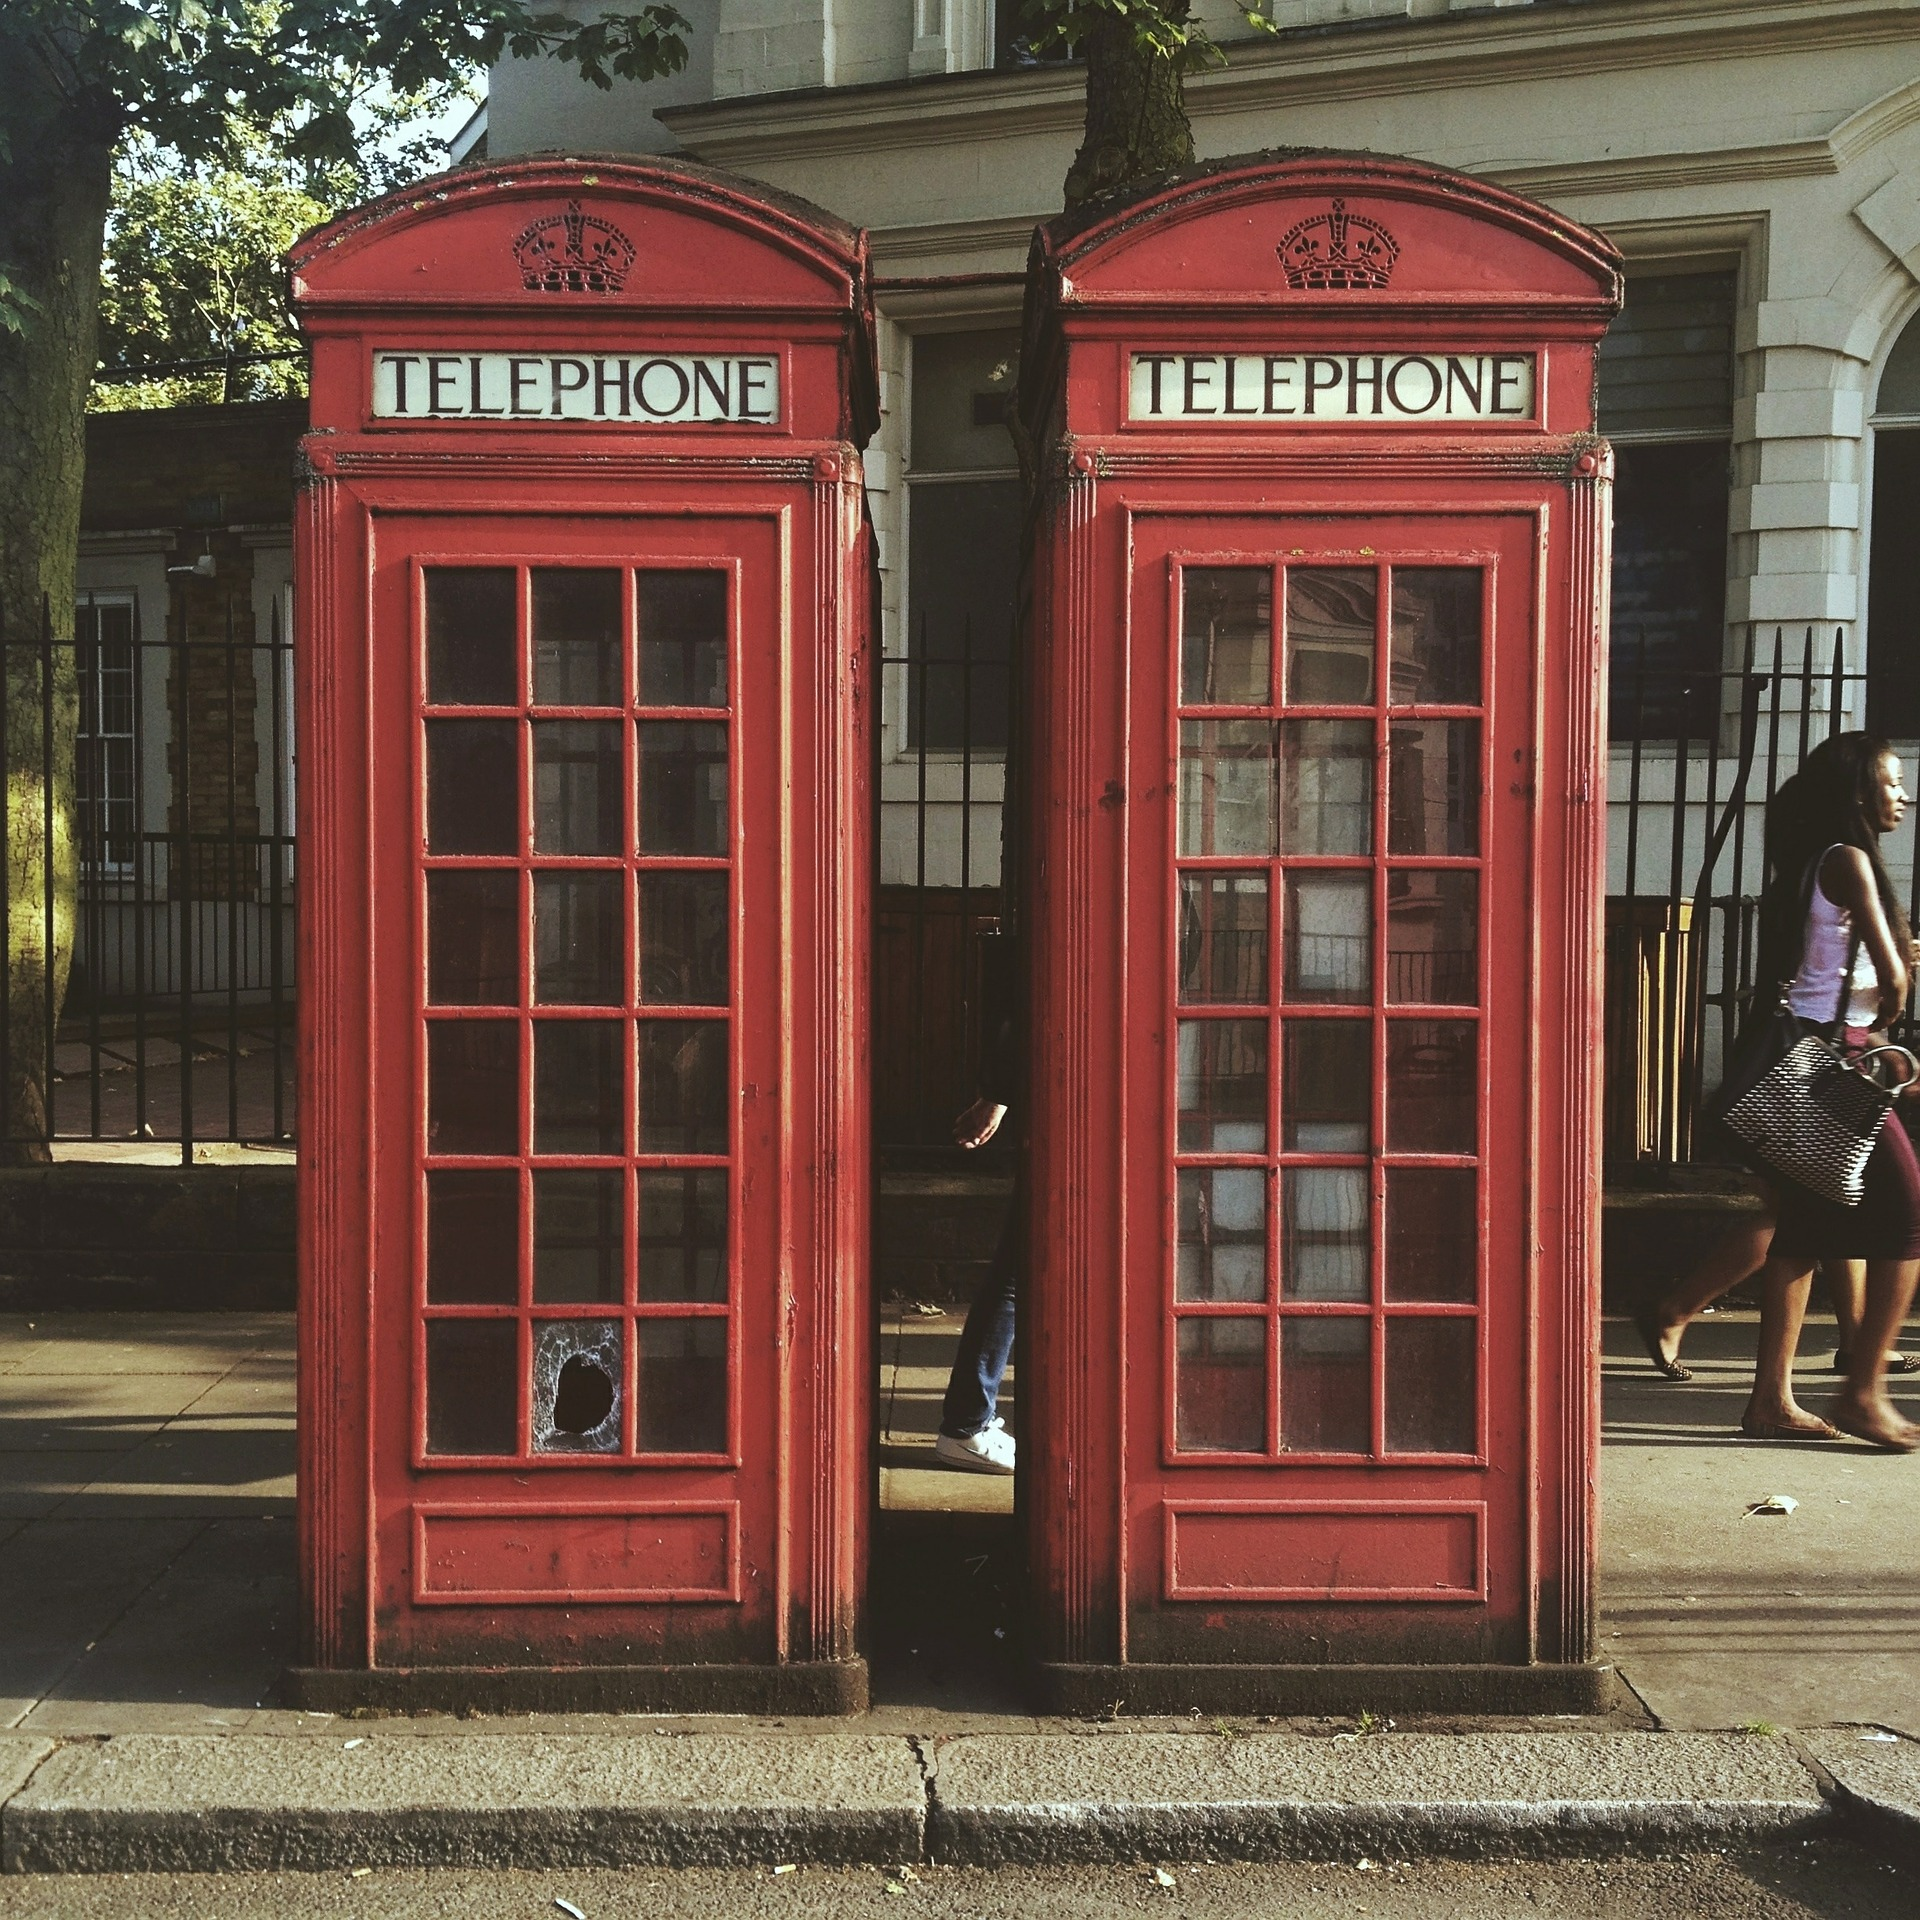 telephone-box-450747_1920